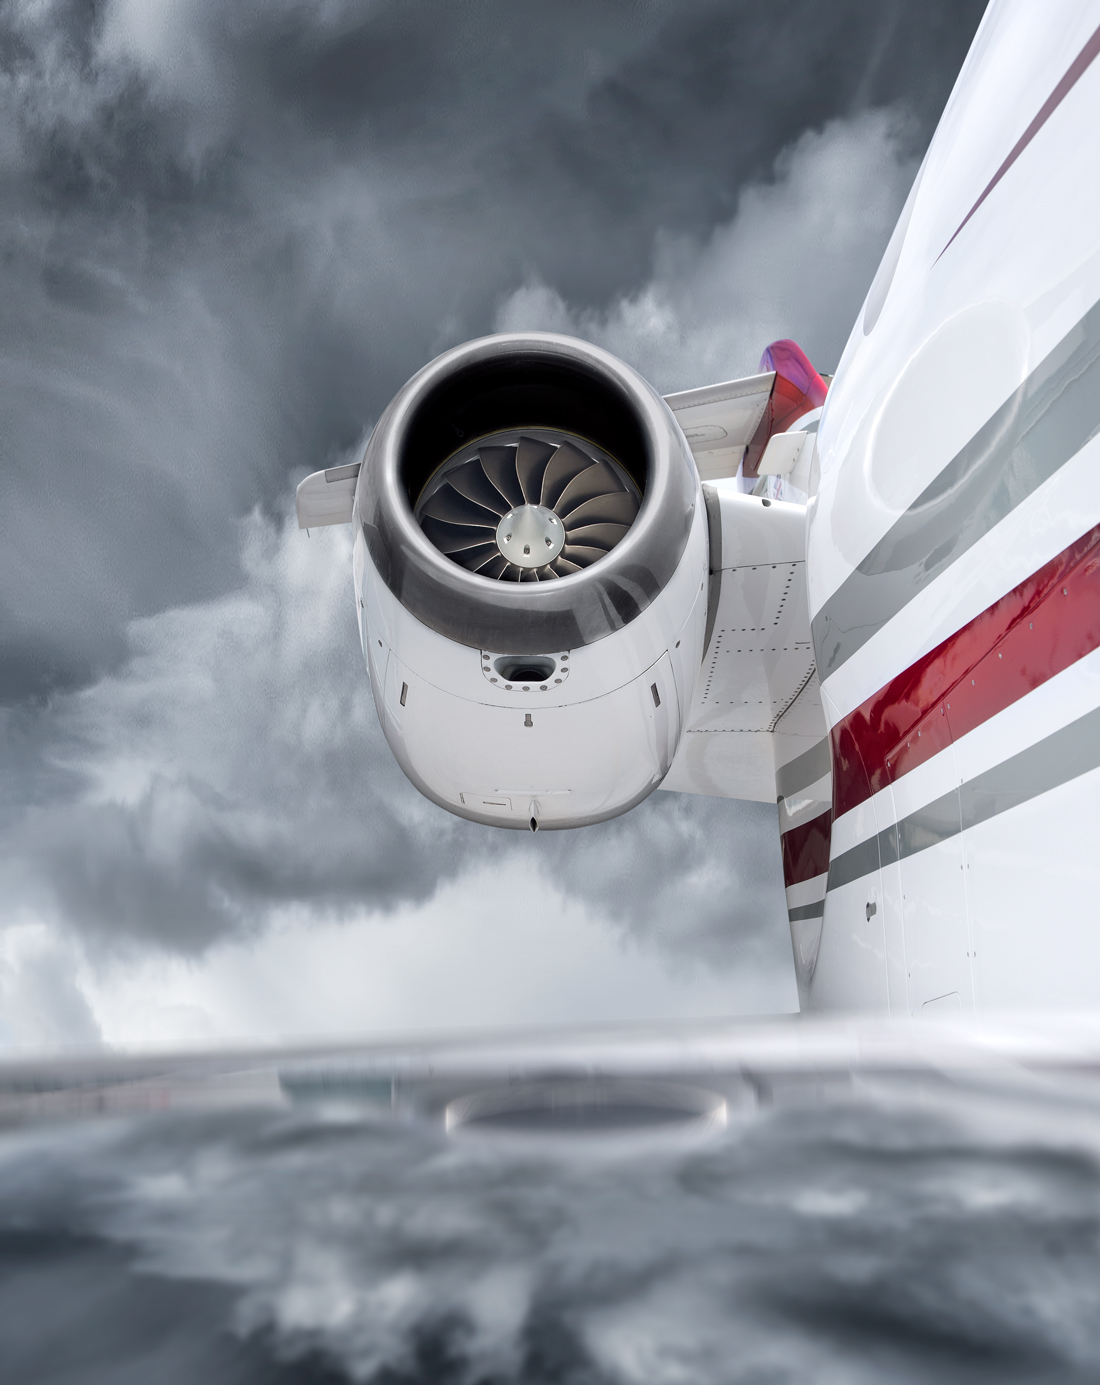 engine of private jet, tim wallace commercial photographer, stock photography, commercial photography, tim wallace